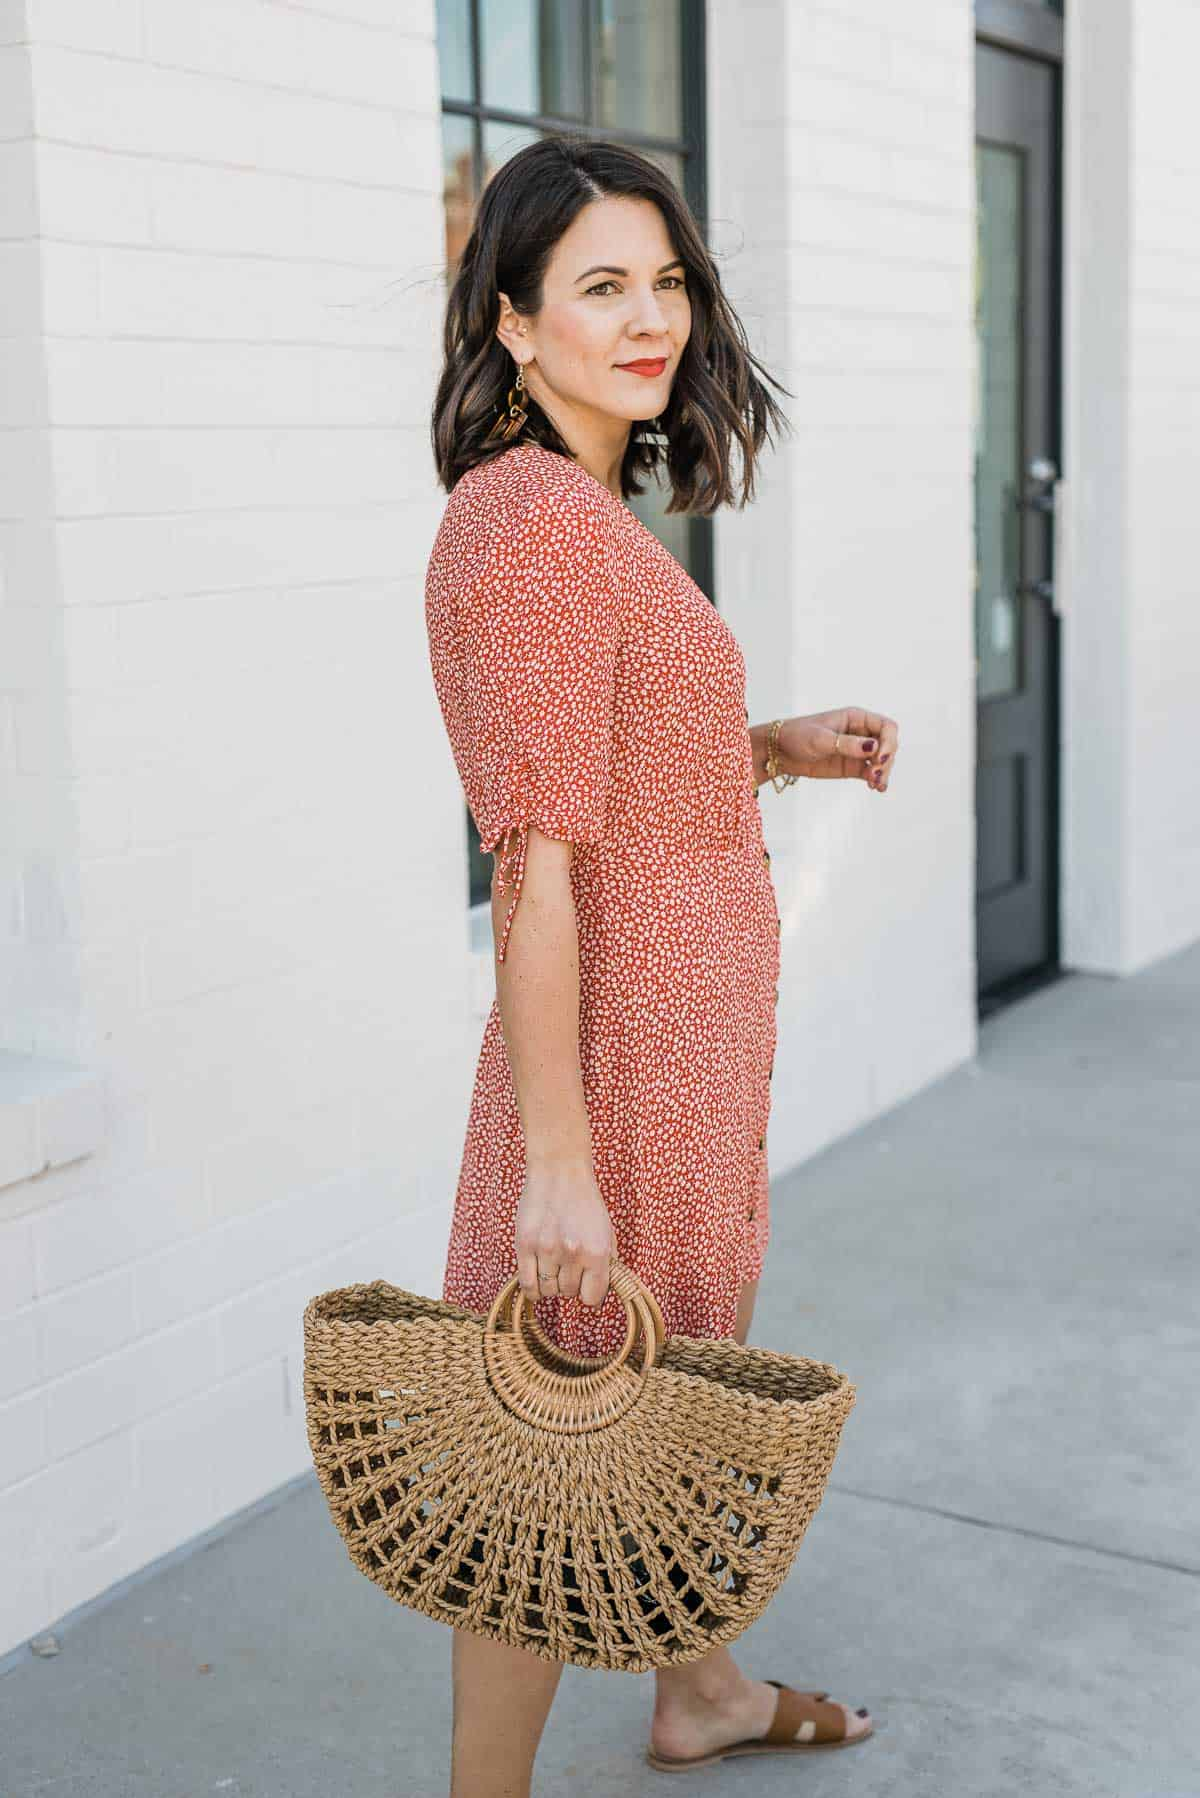 Straw Bag & A Red Summer Dress Outfit